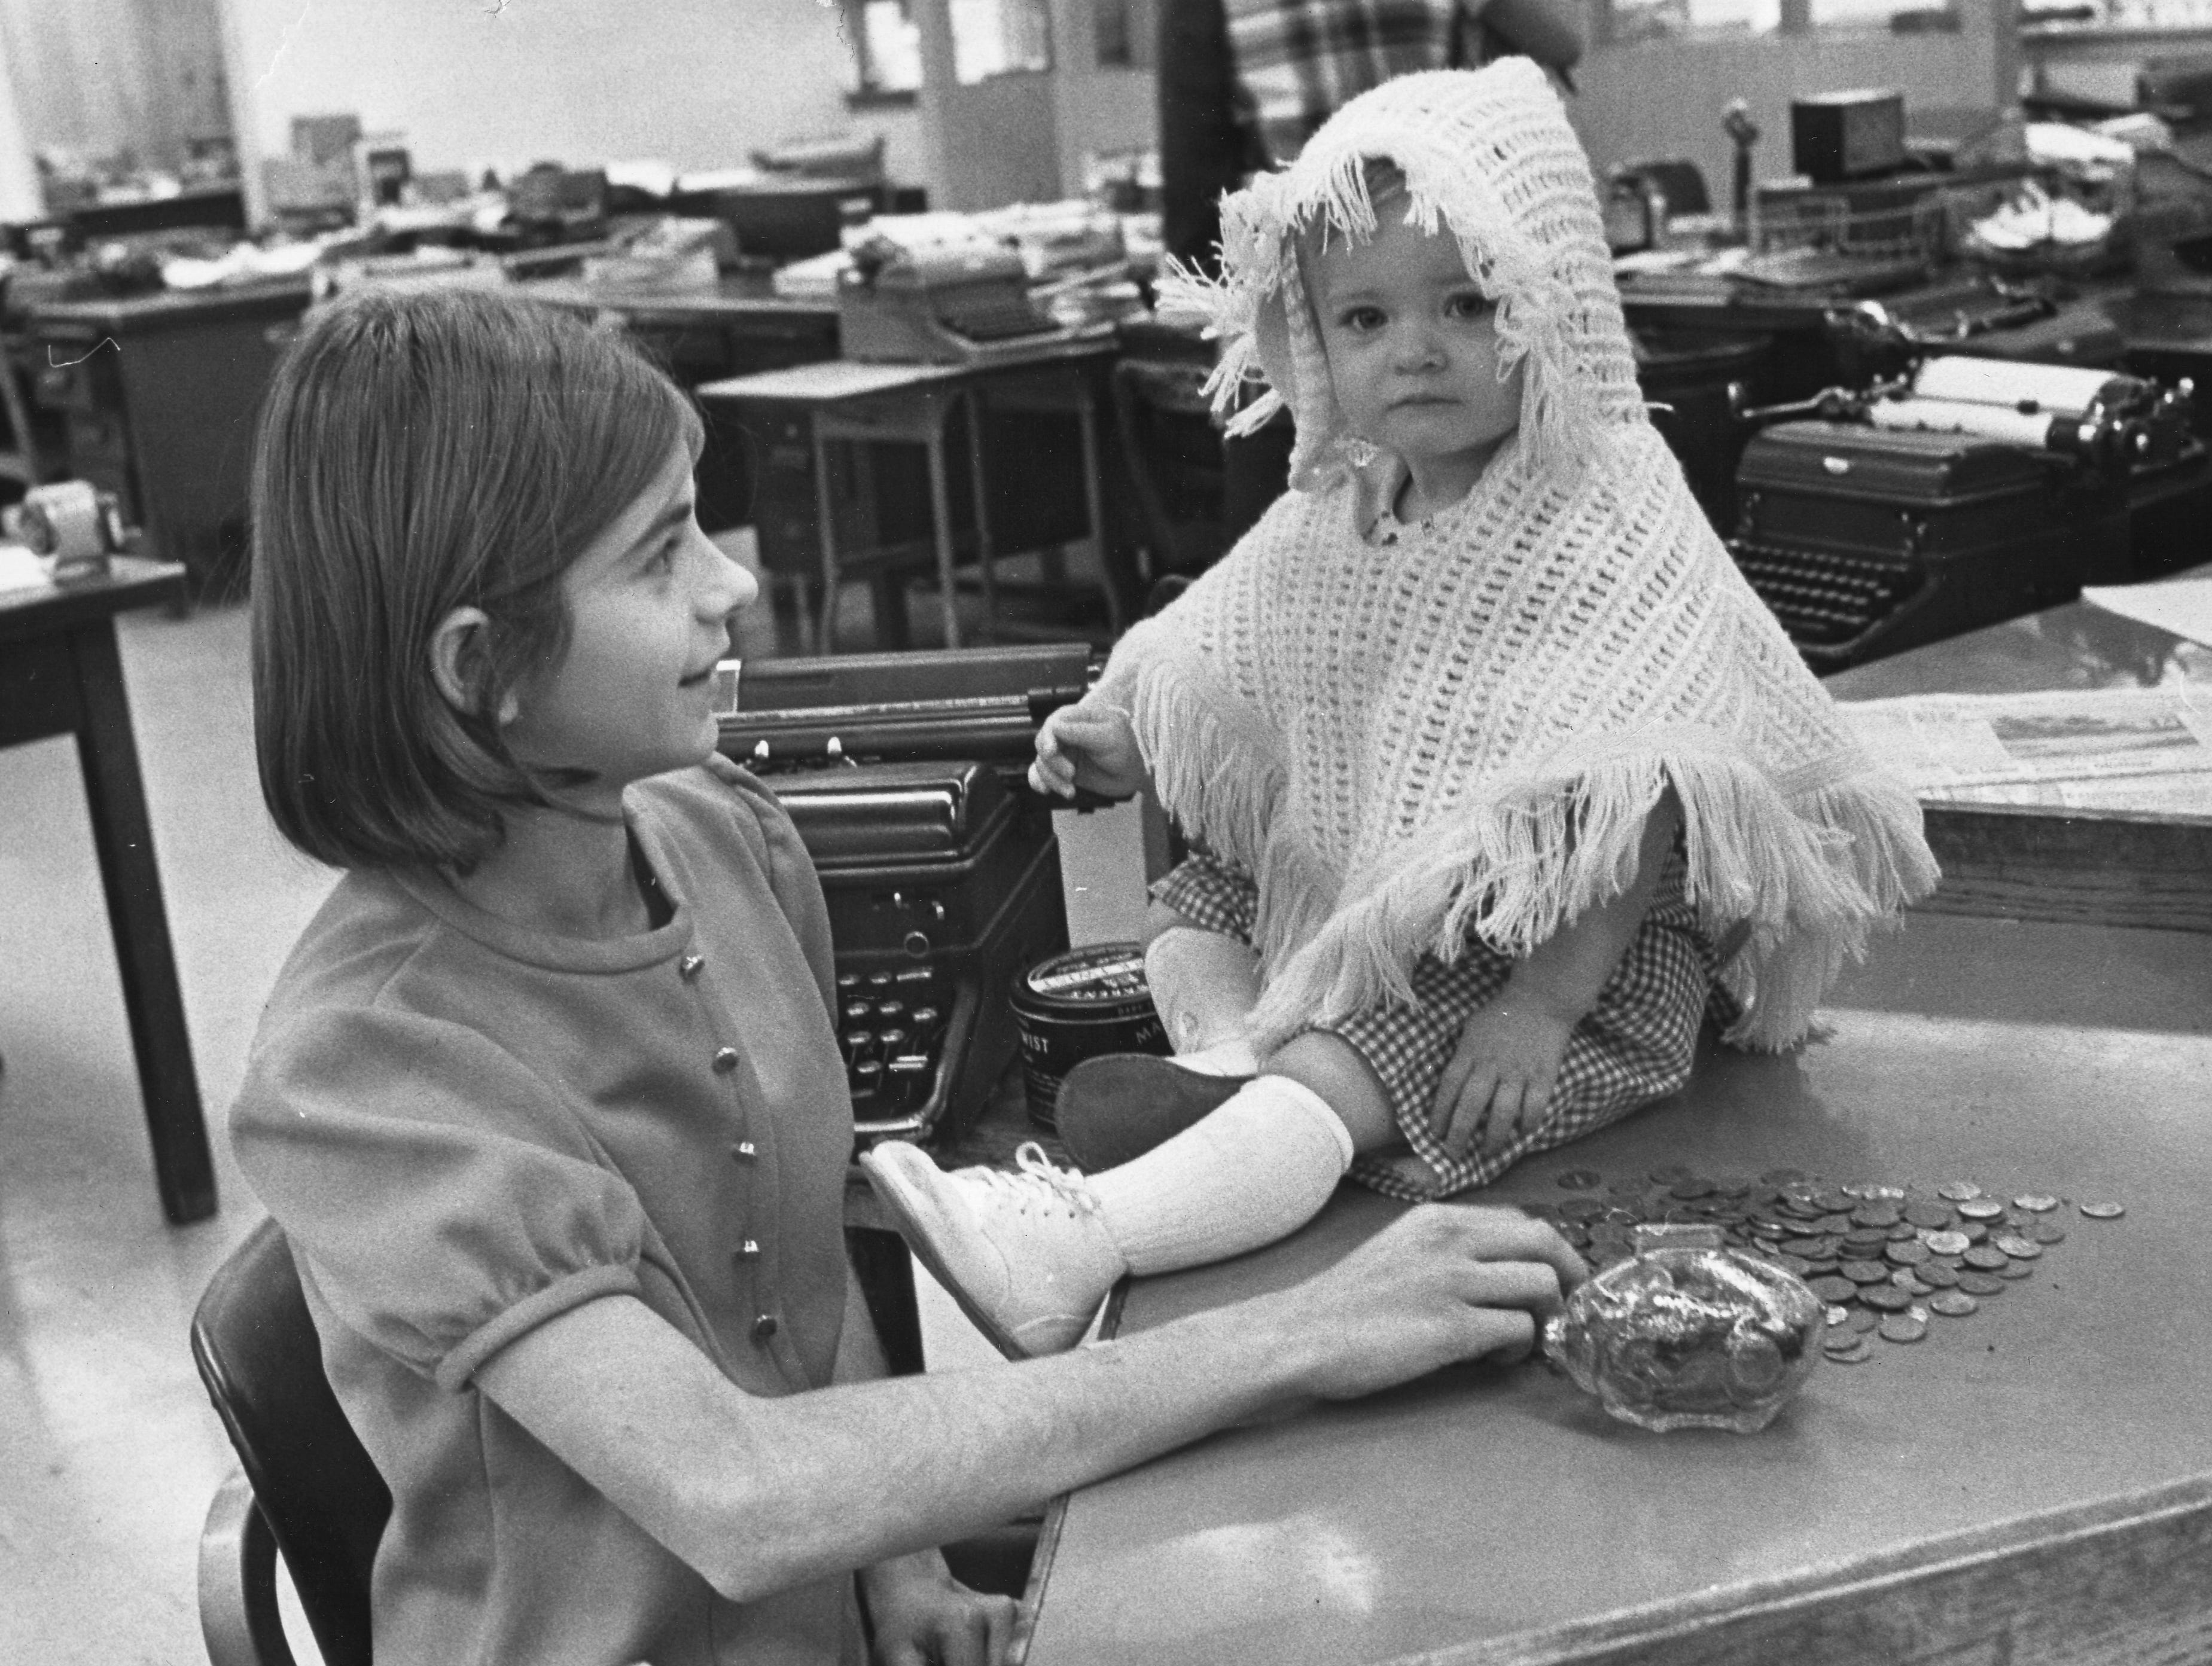 In a photograph published Dec. 14, 1970, Aequeta Meadows, left, counts the pennies in the News-Sentinel newsroom that were saved all year by her sister, Chasey, right, for the Empty Stocking Fund. Chasey contributed $5.55 towards the $10,958 that had been raised to date.